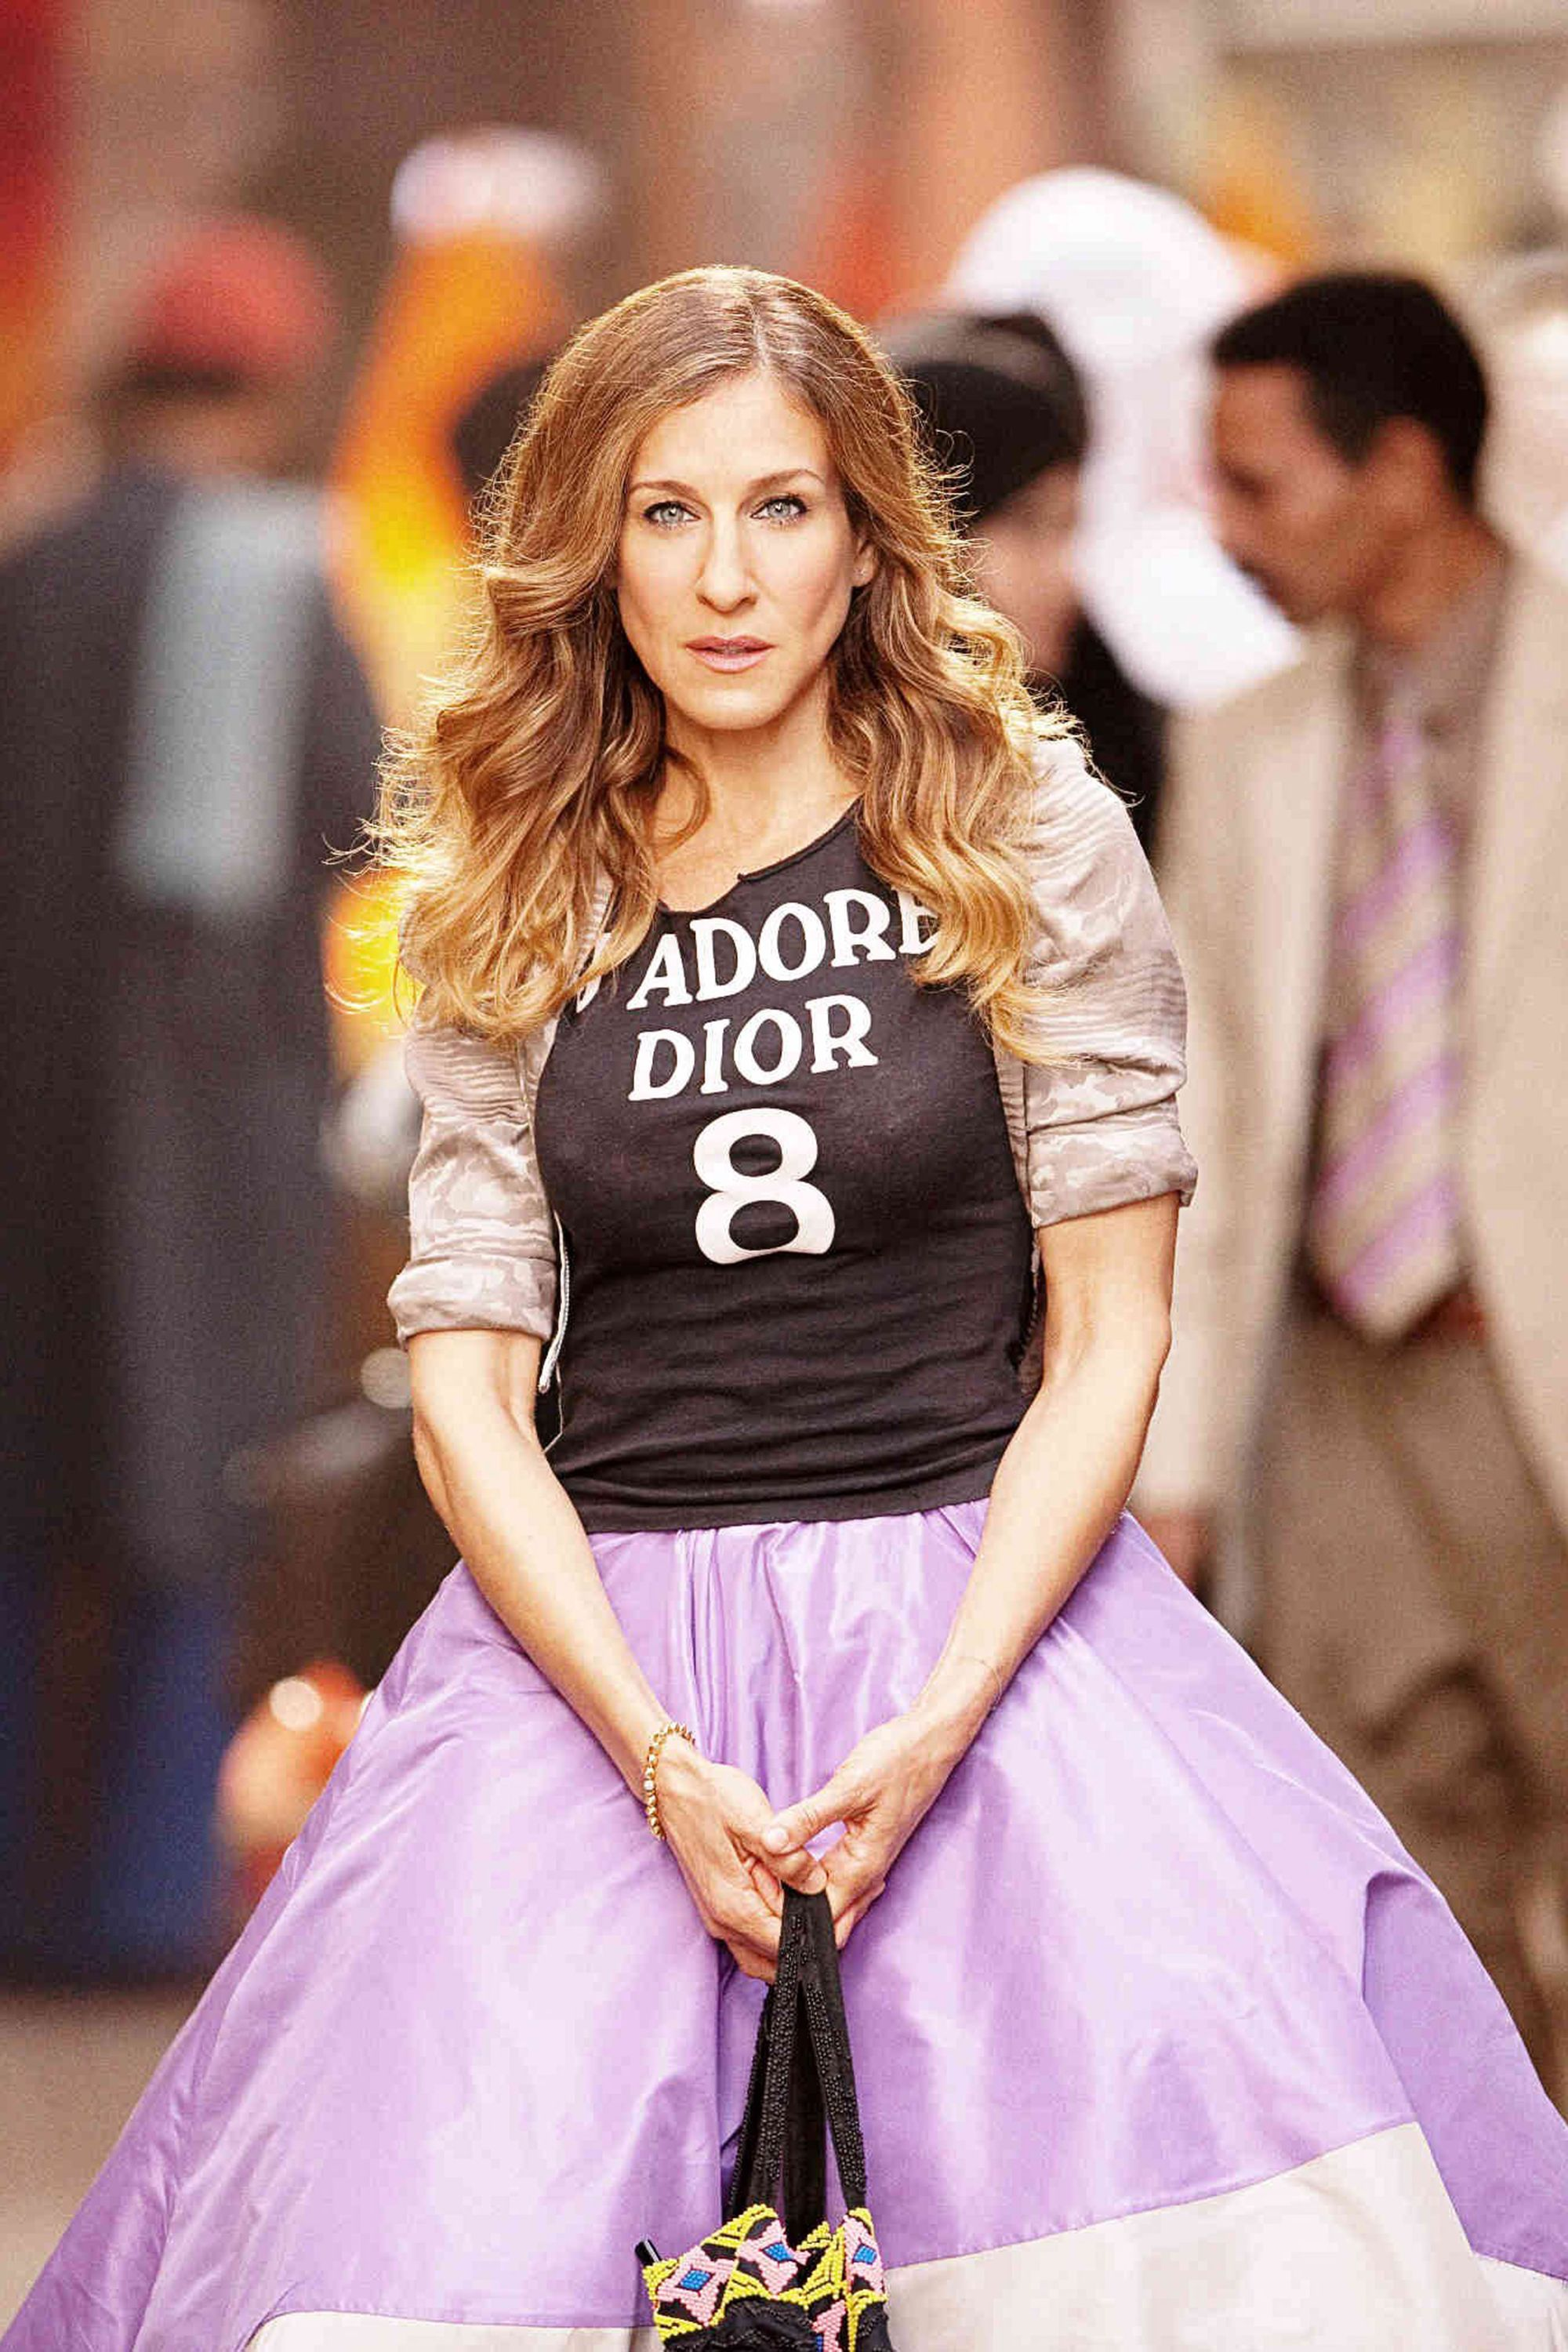 17 times when Carrie Bradshaw was right about love